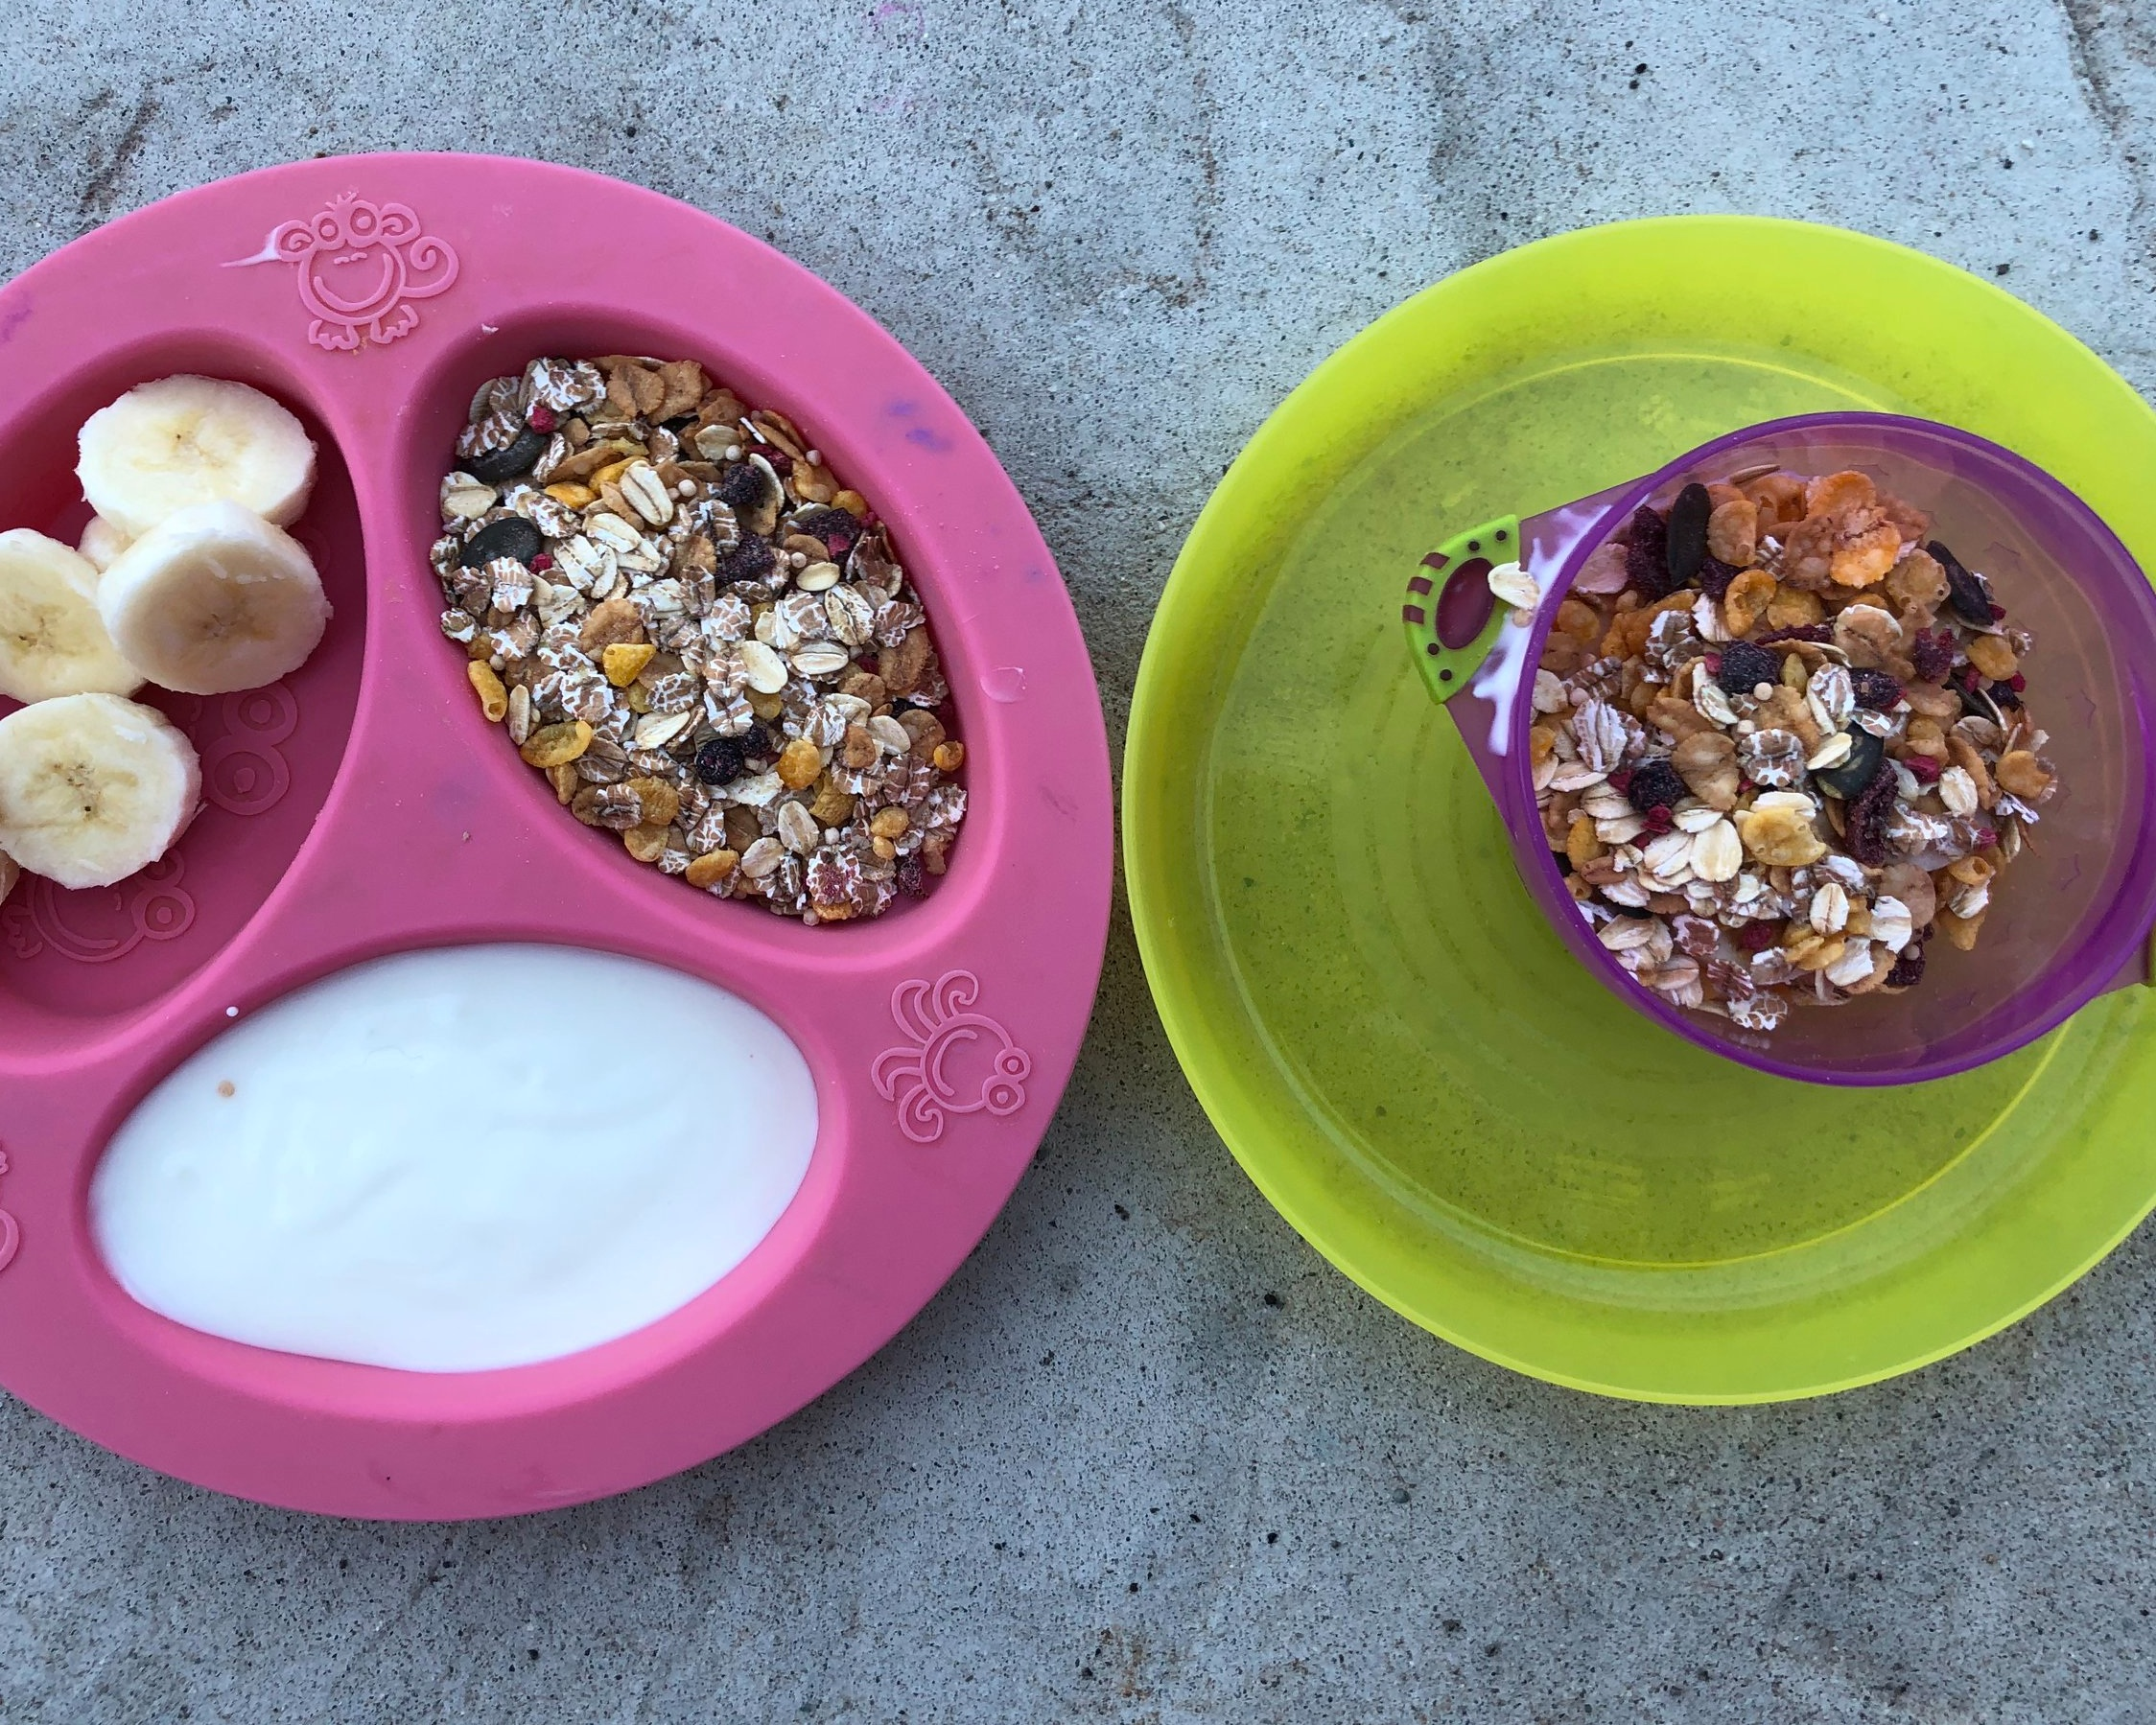 Day 4 - DIY yogurt and granola parfaitOne of my favorite breakfast menu items! I provide the kiddos yogurt, sliced bananas or other fruit and some sort of granola (muesli is pictured here). Then I let my kids create their own parfait in a separate bowl. It may get eaten before it's placed in the bowl, but the point is to have a fun and engaging breakfast.